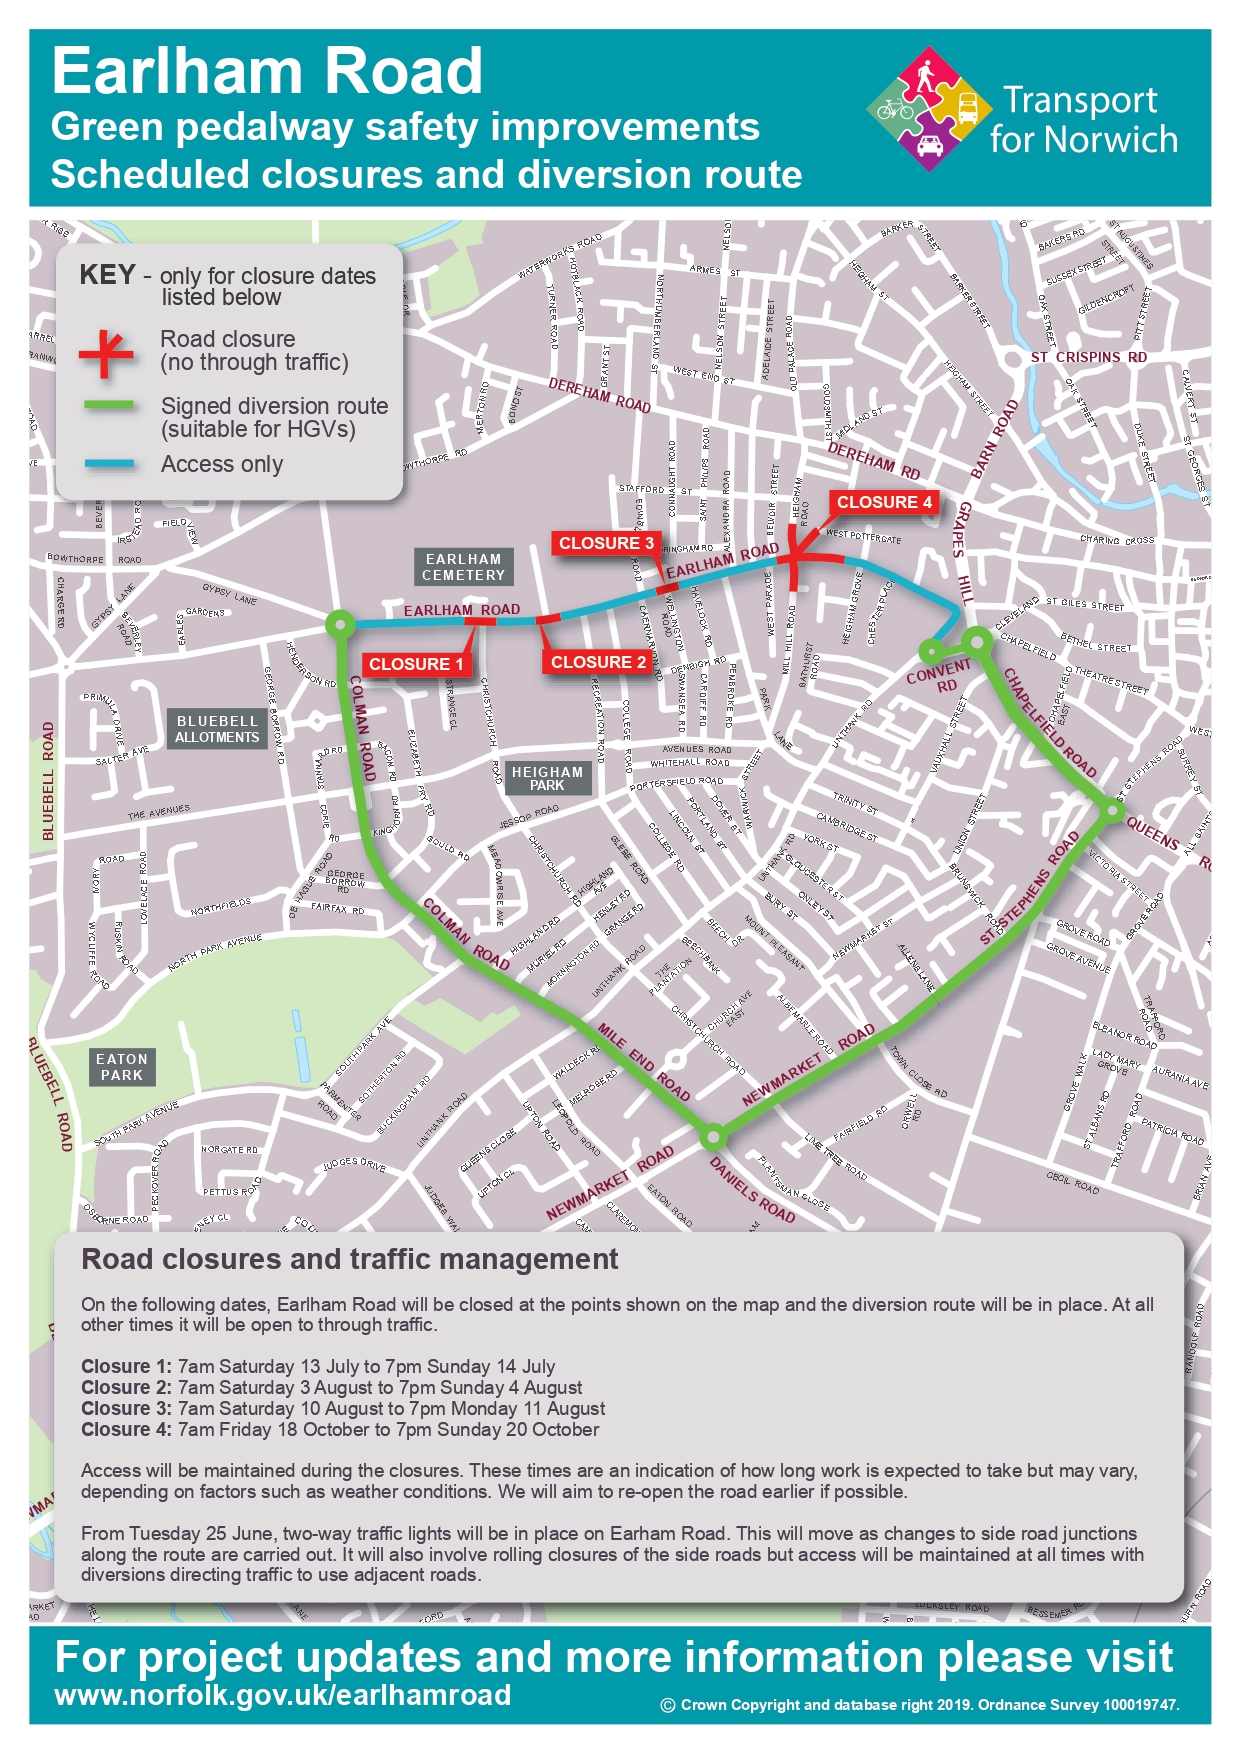 Earlham Road green pedalway map 2019 (1)_pages-to-jpg-0001.jpg